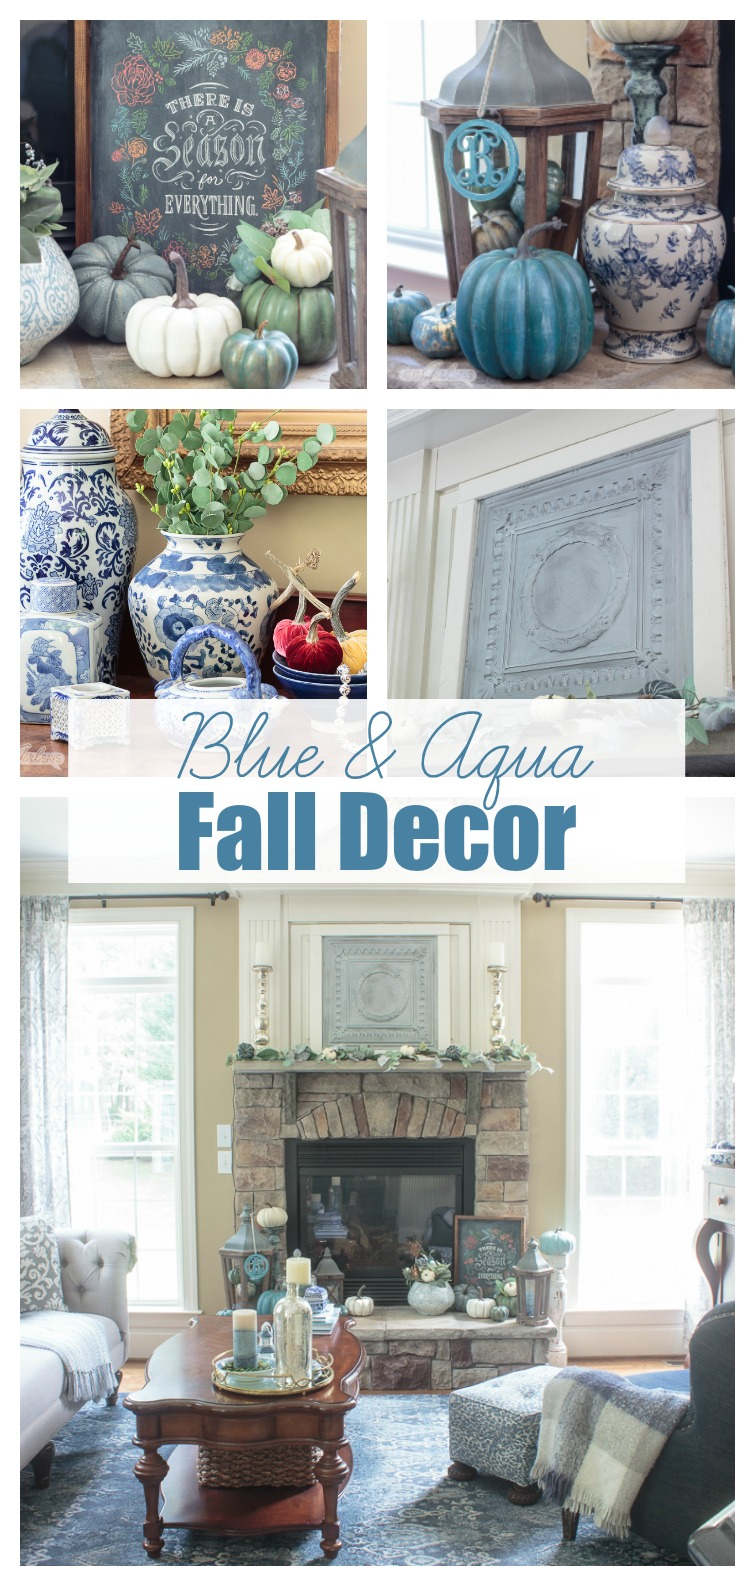 collage photo titled Blue & Aqua Fall Decor showing blue and white ginger jars, antique tin ceiling tile artwork and a family room decorated in blue and gray